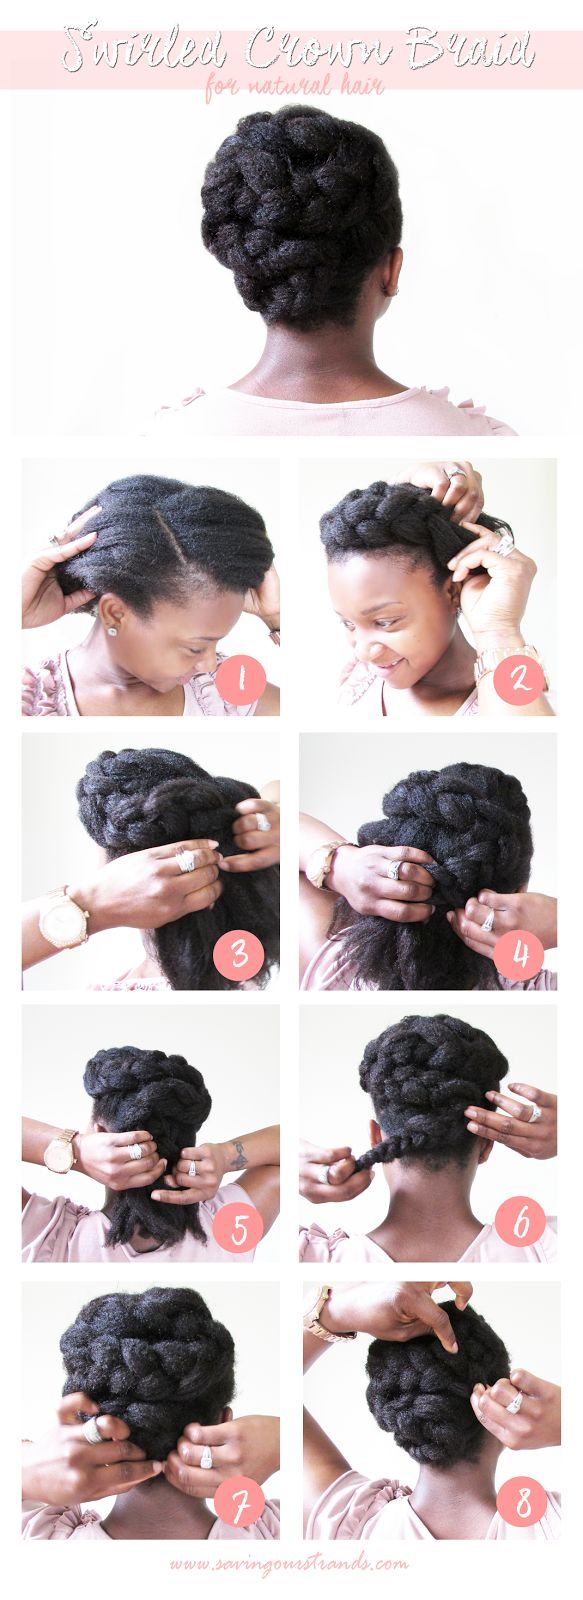 best Hair nd Beauty images on Pinterest  African hairstyles